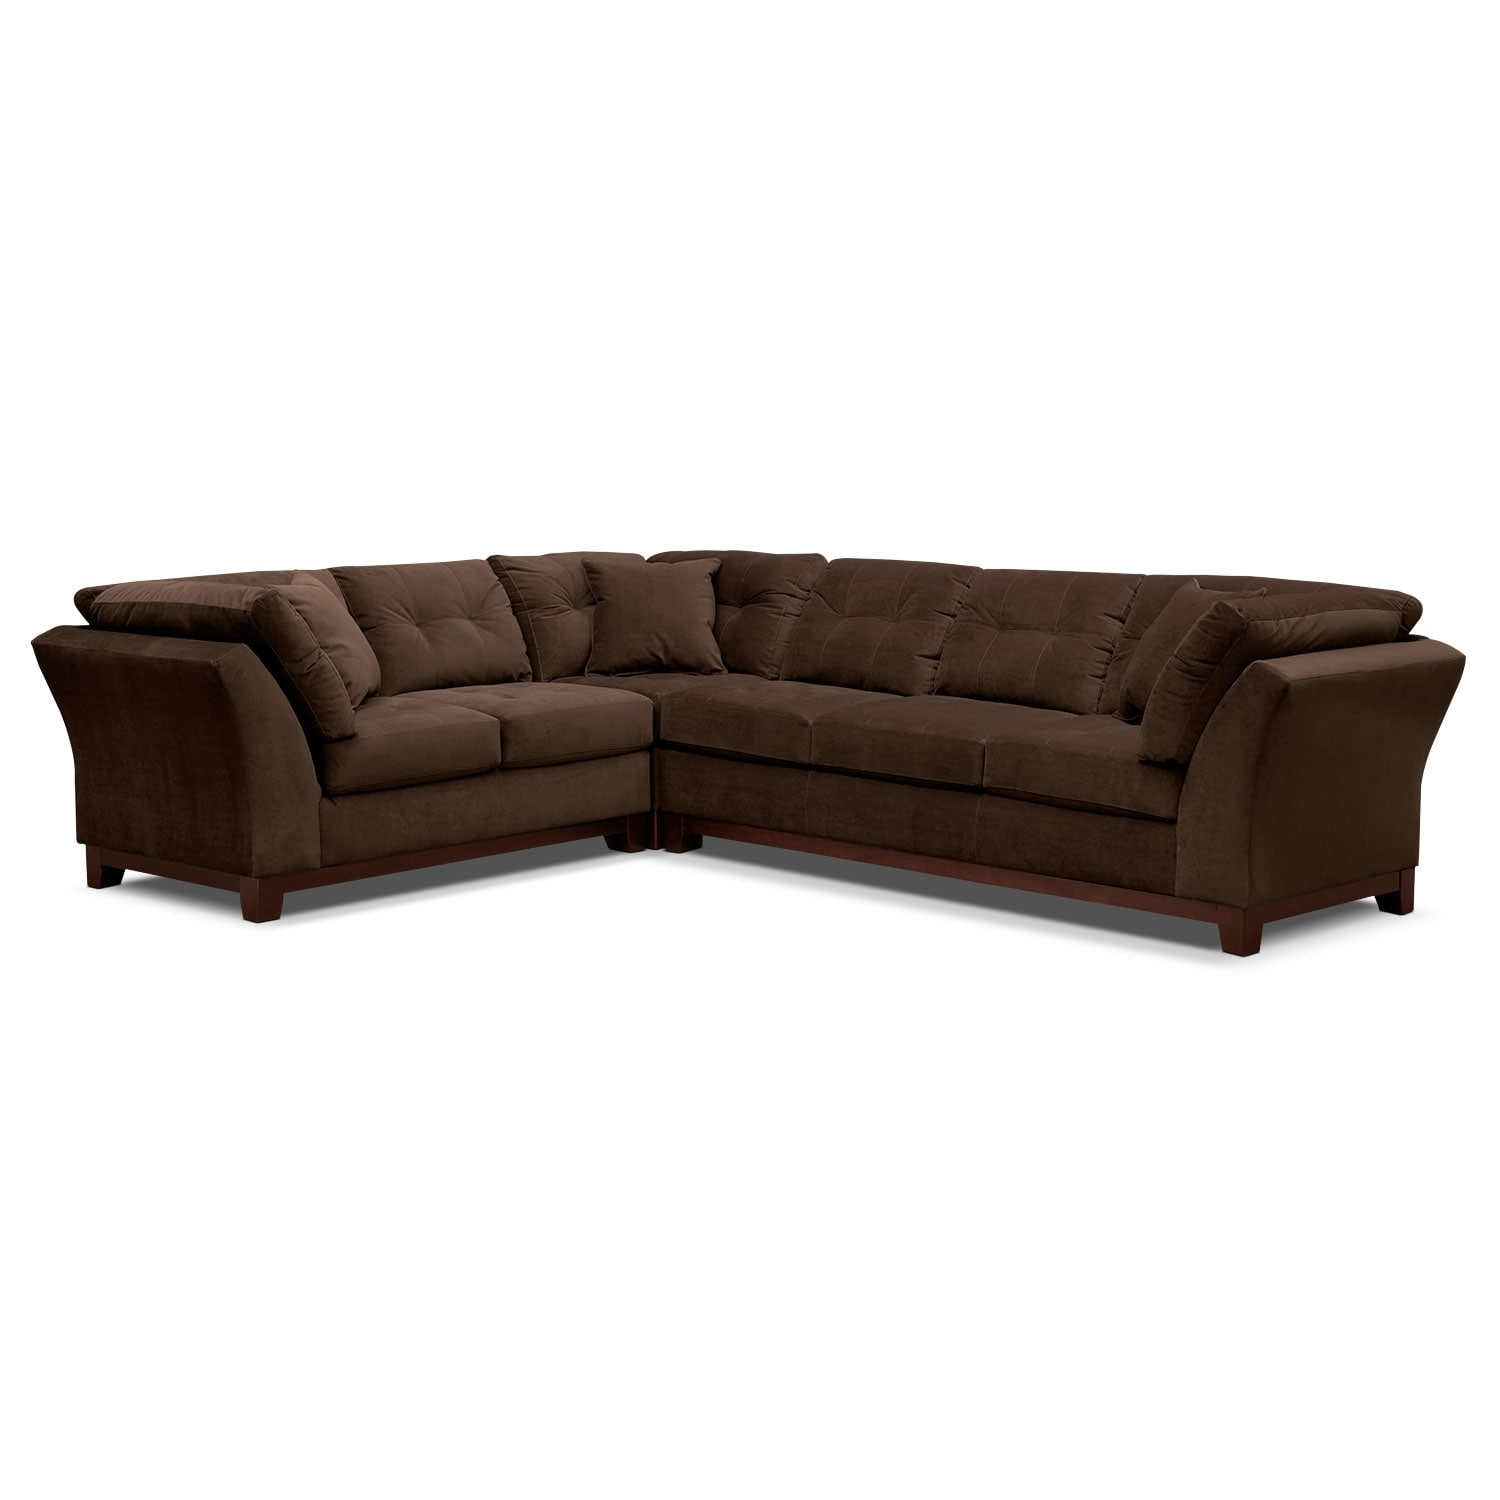 Living Room Furniture - Solace Chocolate II 3 Pc. Sectional